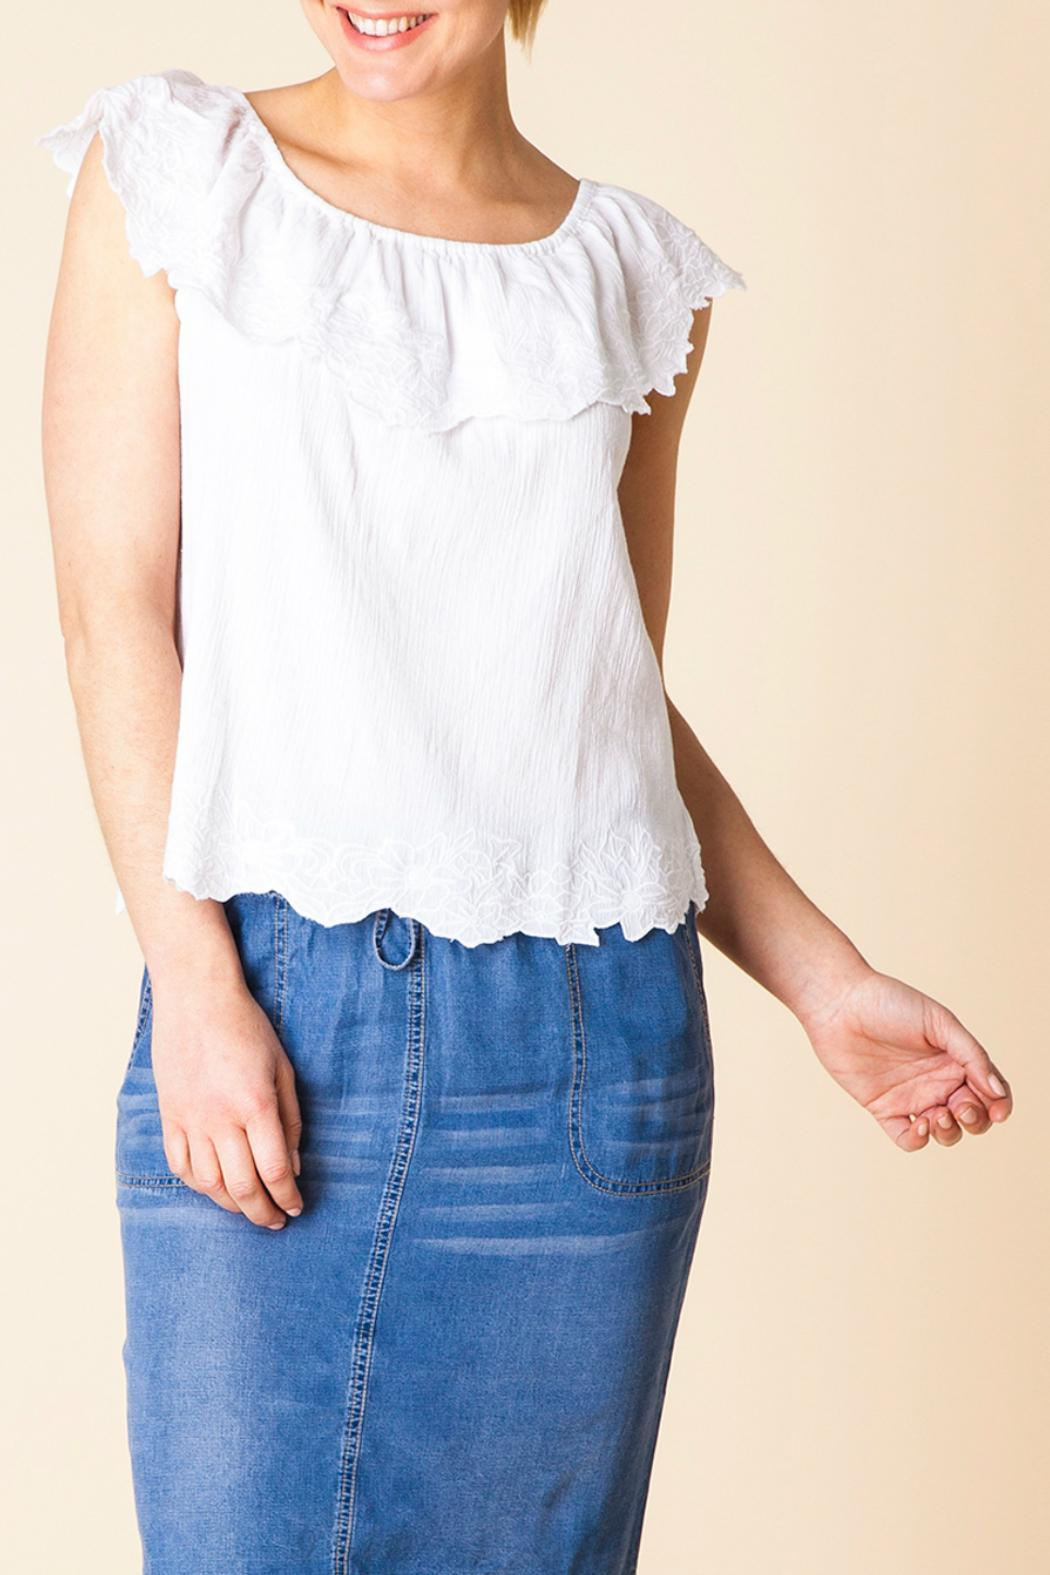 Yest Ruffle Shoulder Top - Main Image